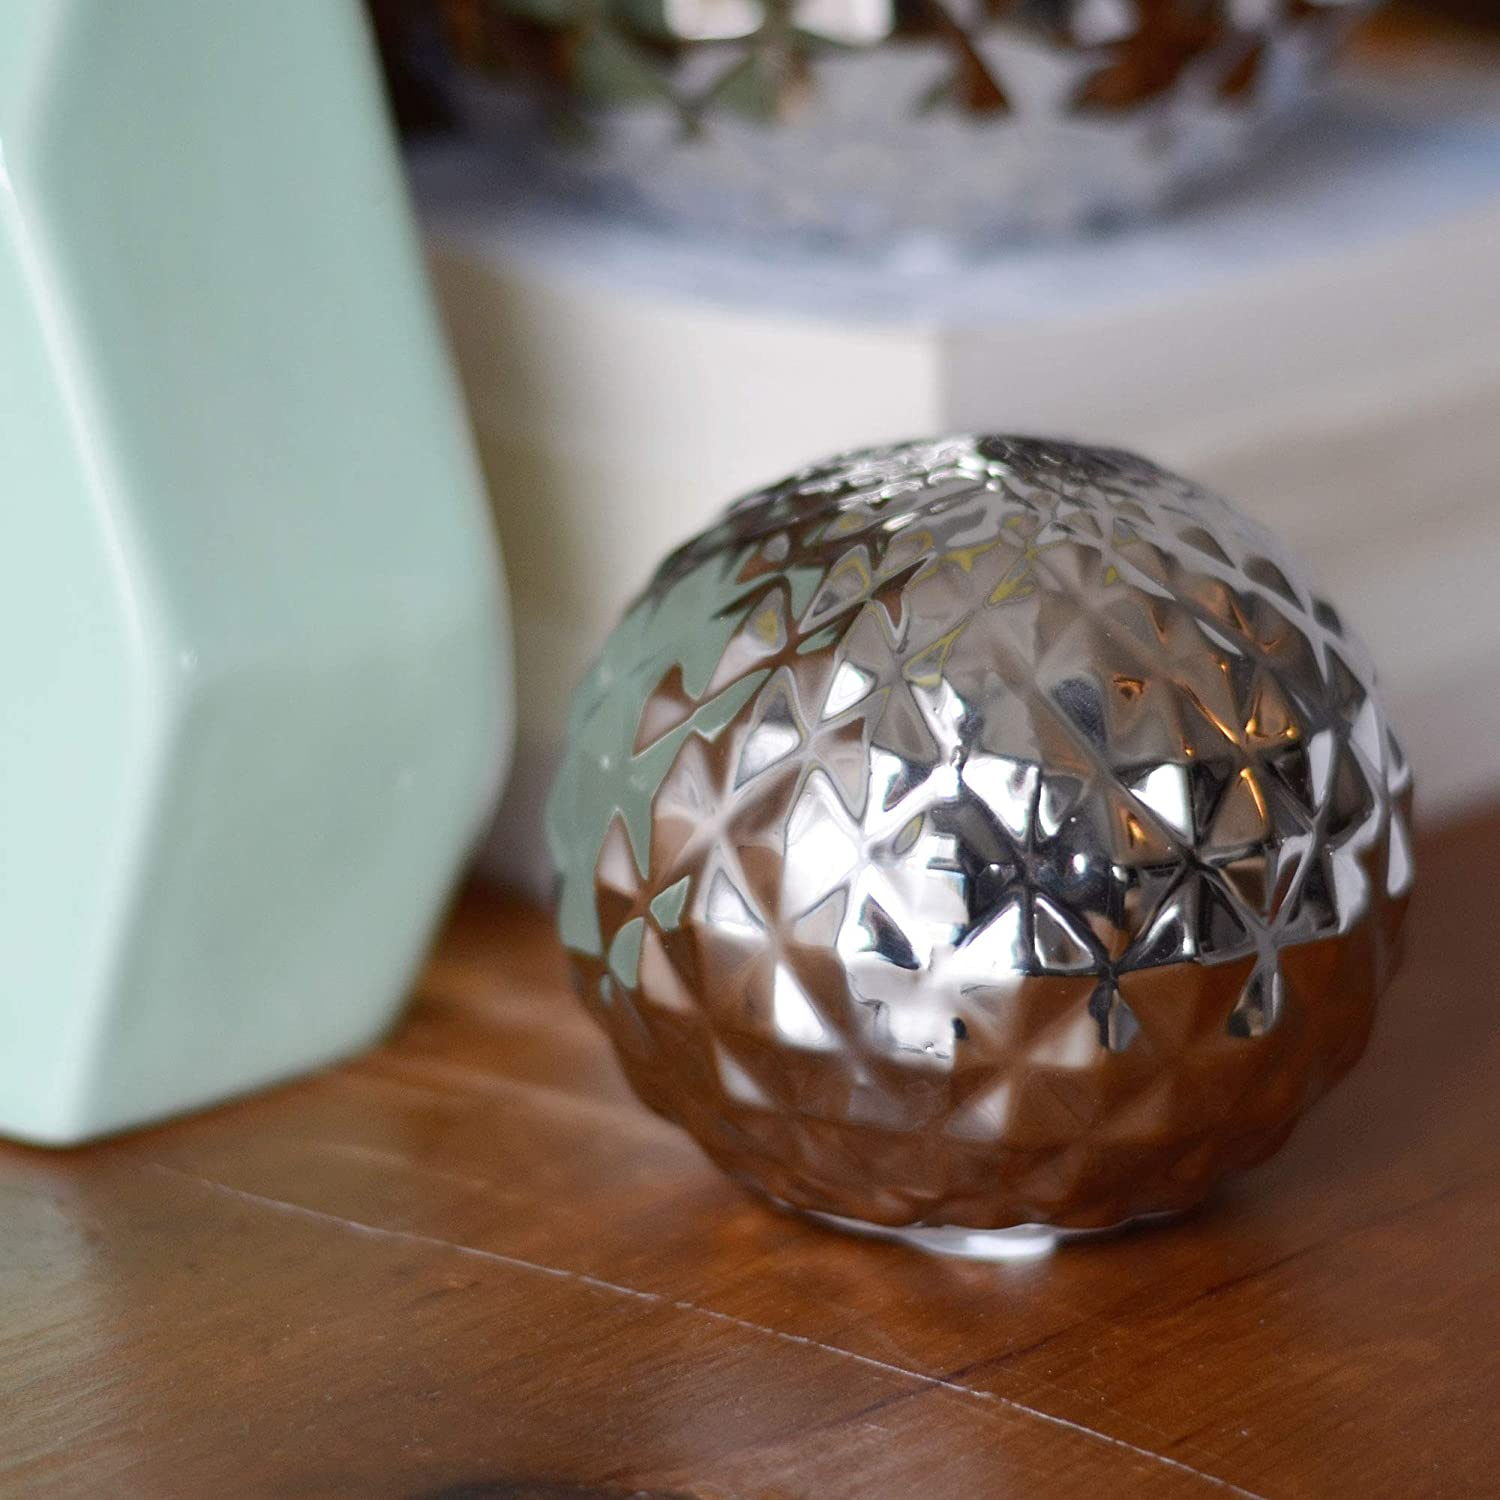 Sphere Disco Style Globe 4 Inches in Diameter Glazed Ceramic Bowl Filler or Free Standing Art WHW Whole House Worlds Crosby Street Faceted Silver Ball